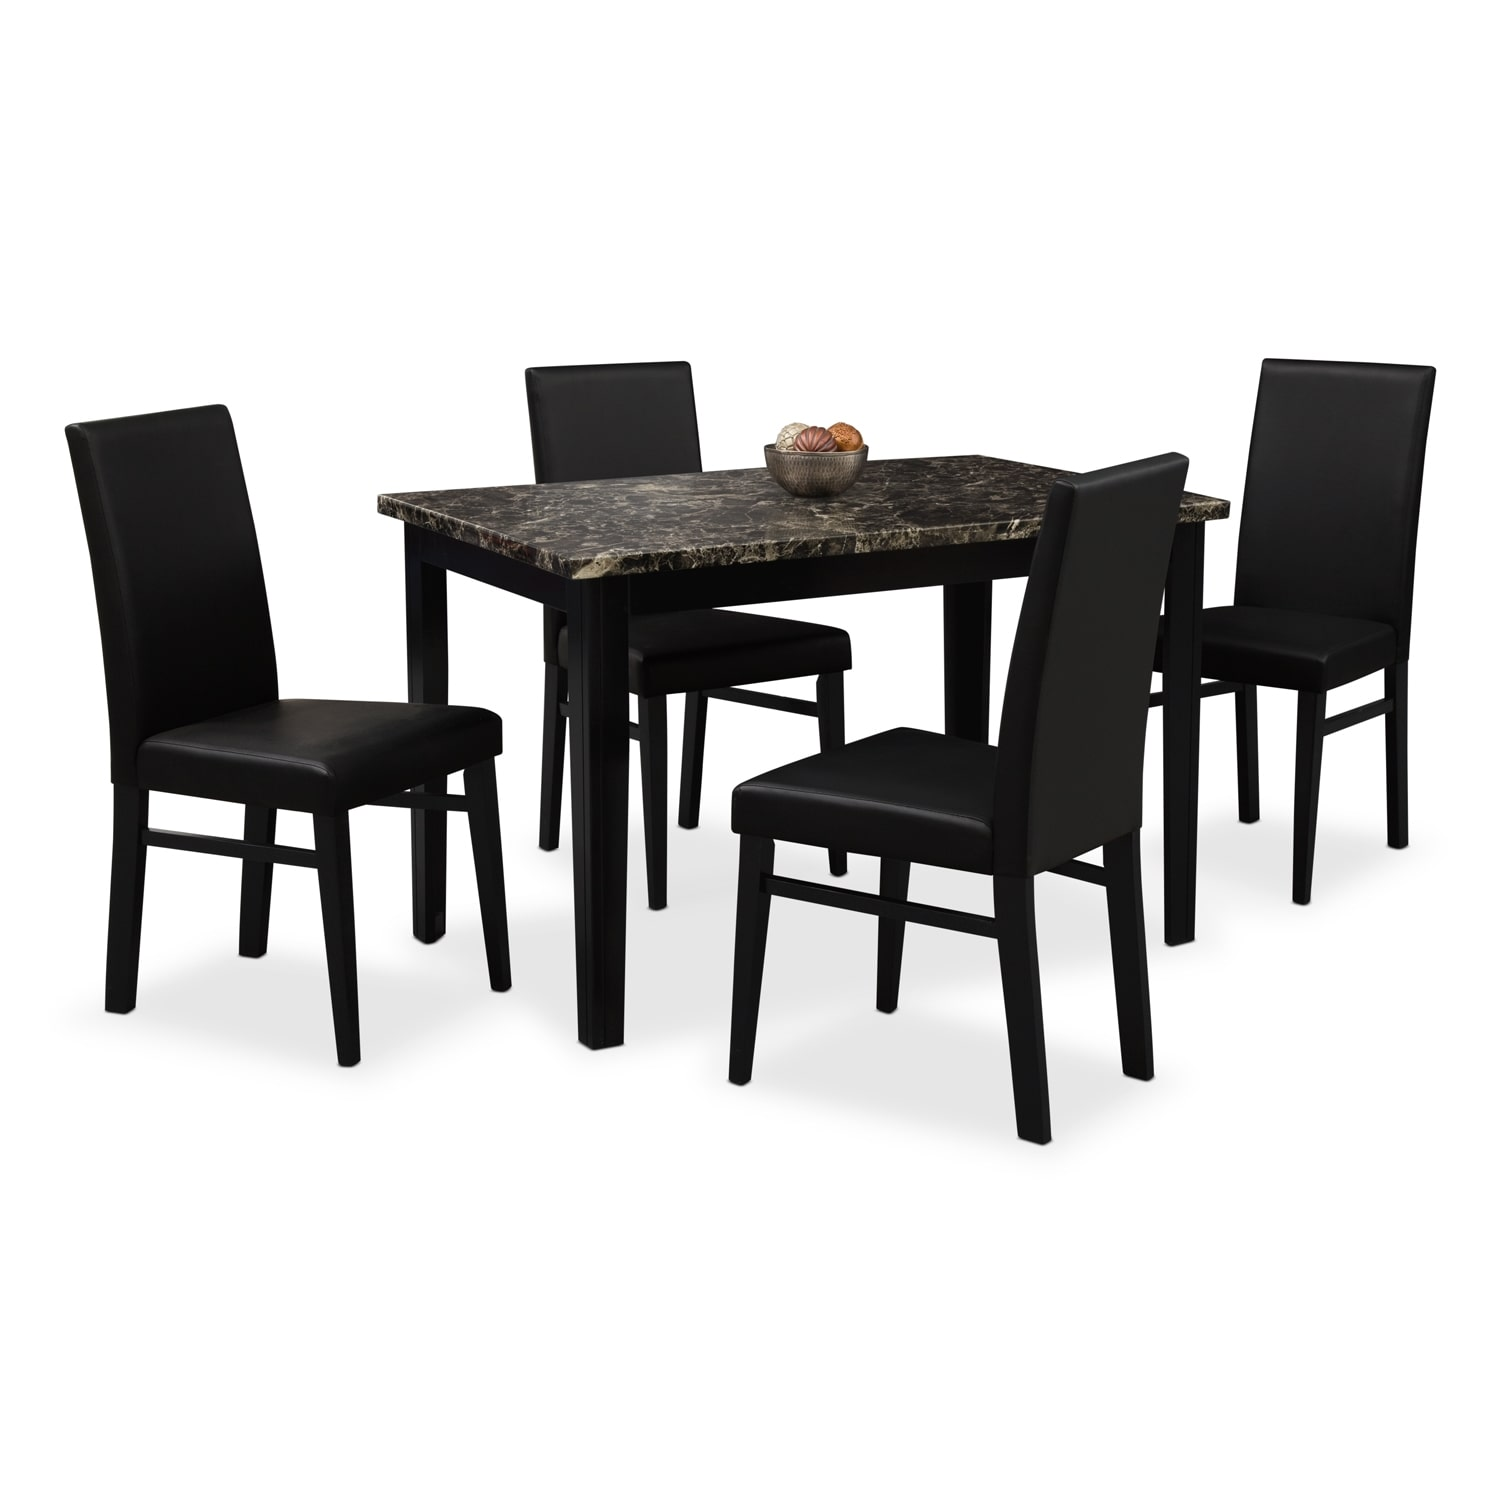 Dining Room Table And Chairs: Shadow Table And 4 Chairs - Black